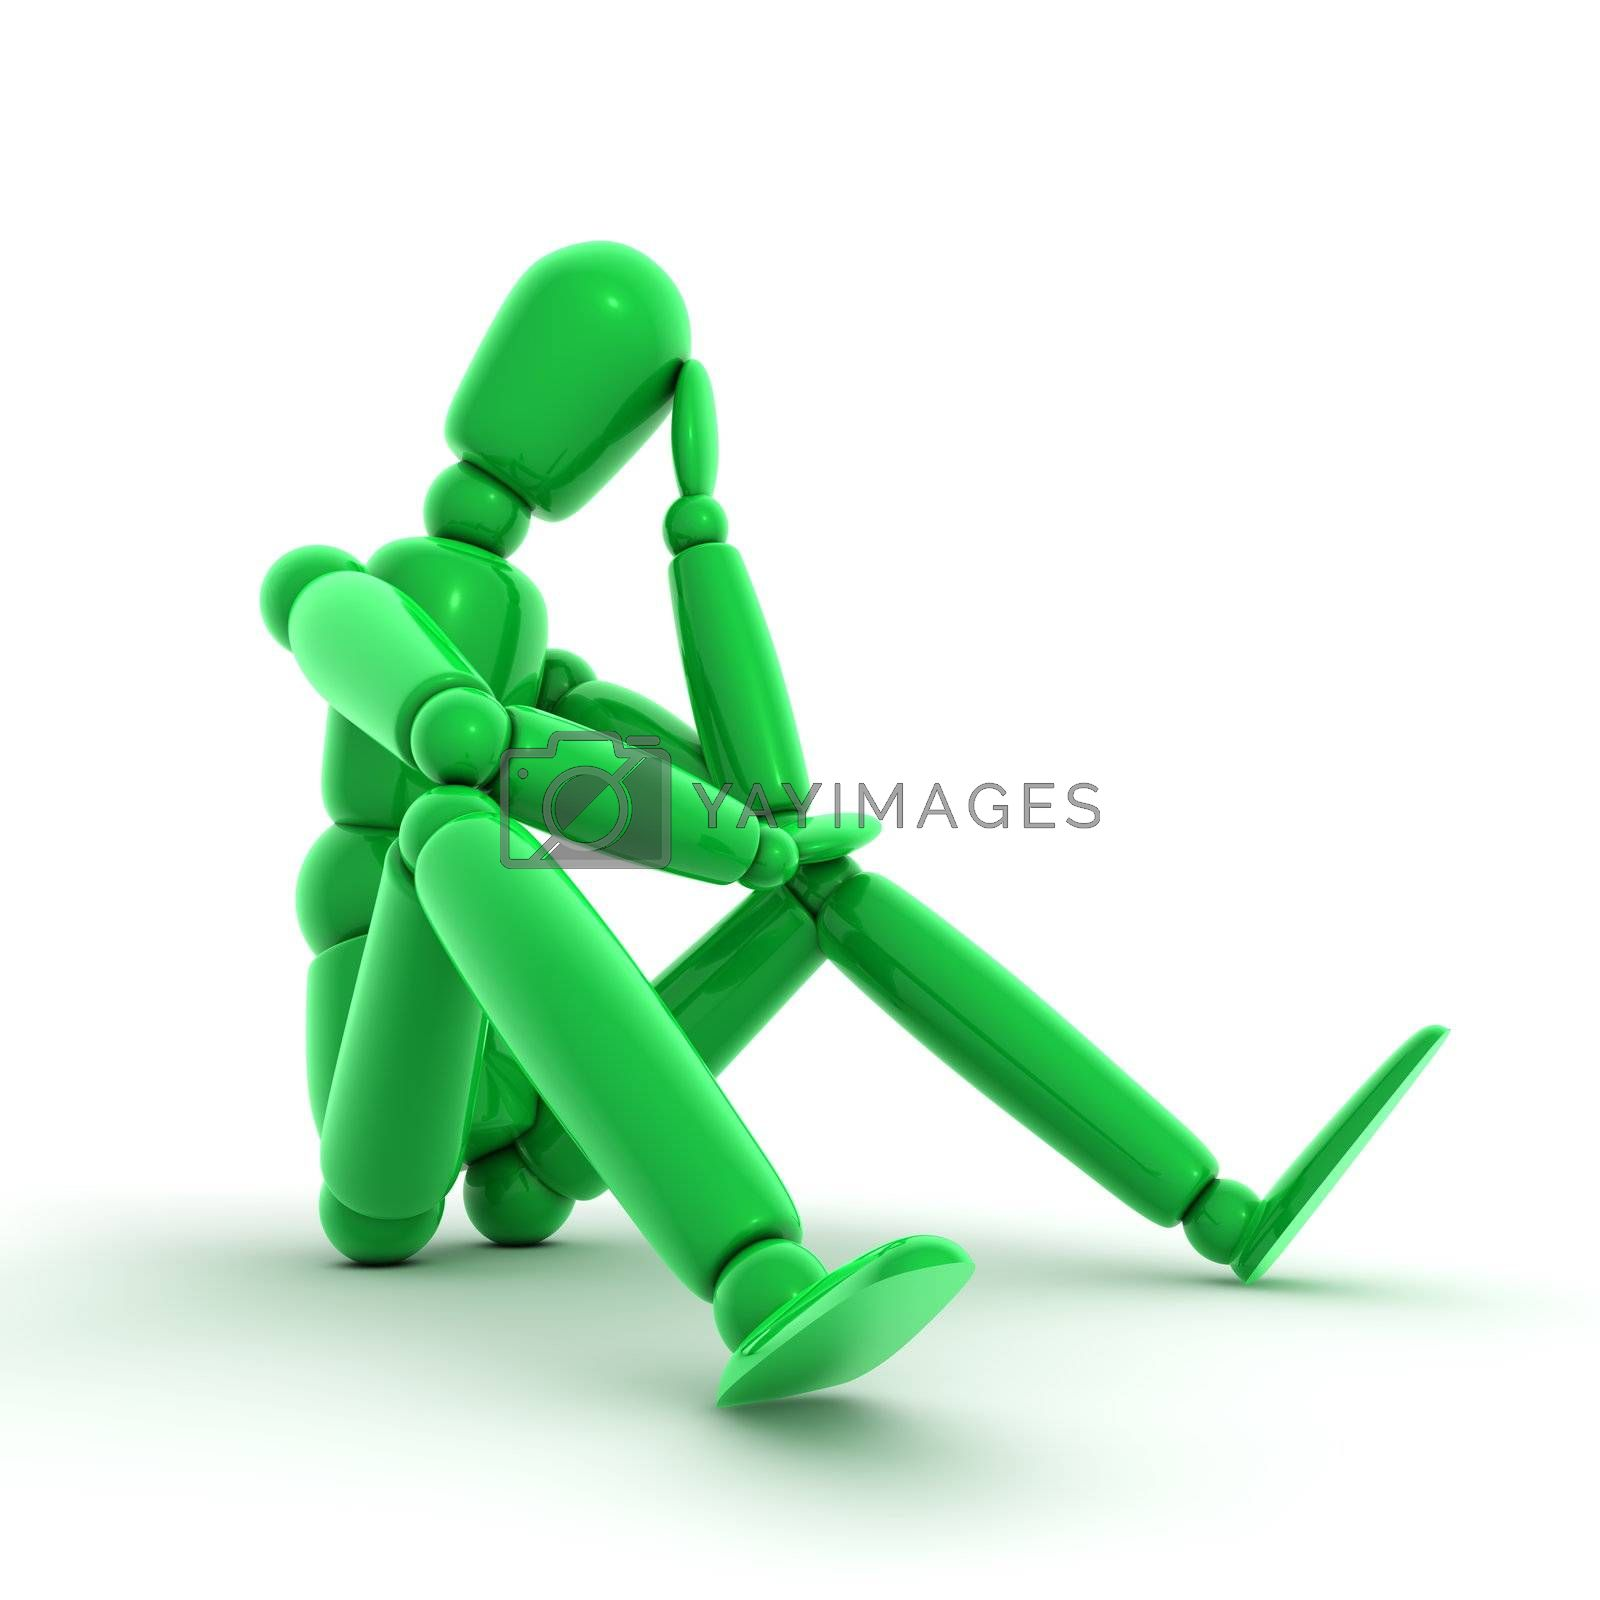 shiny green lay figure sitting on a white ground thinking